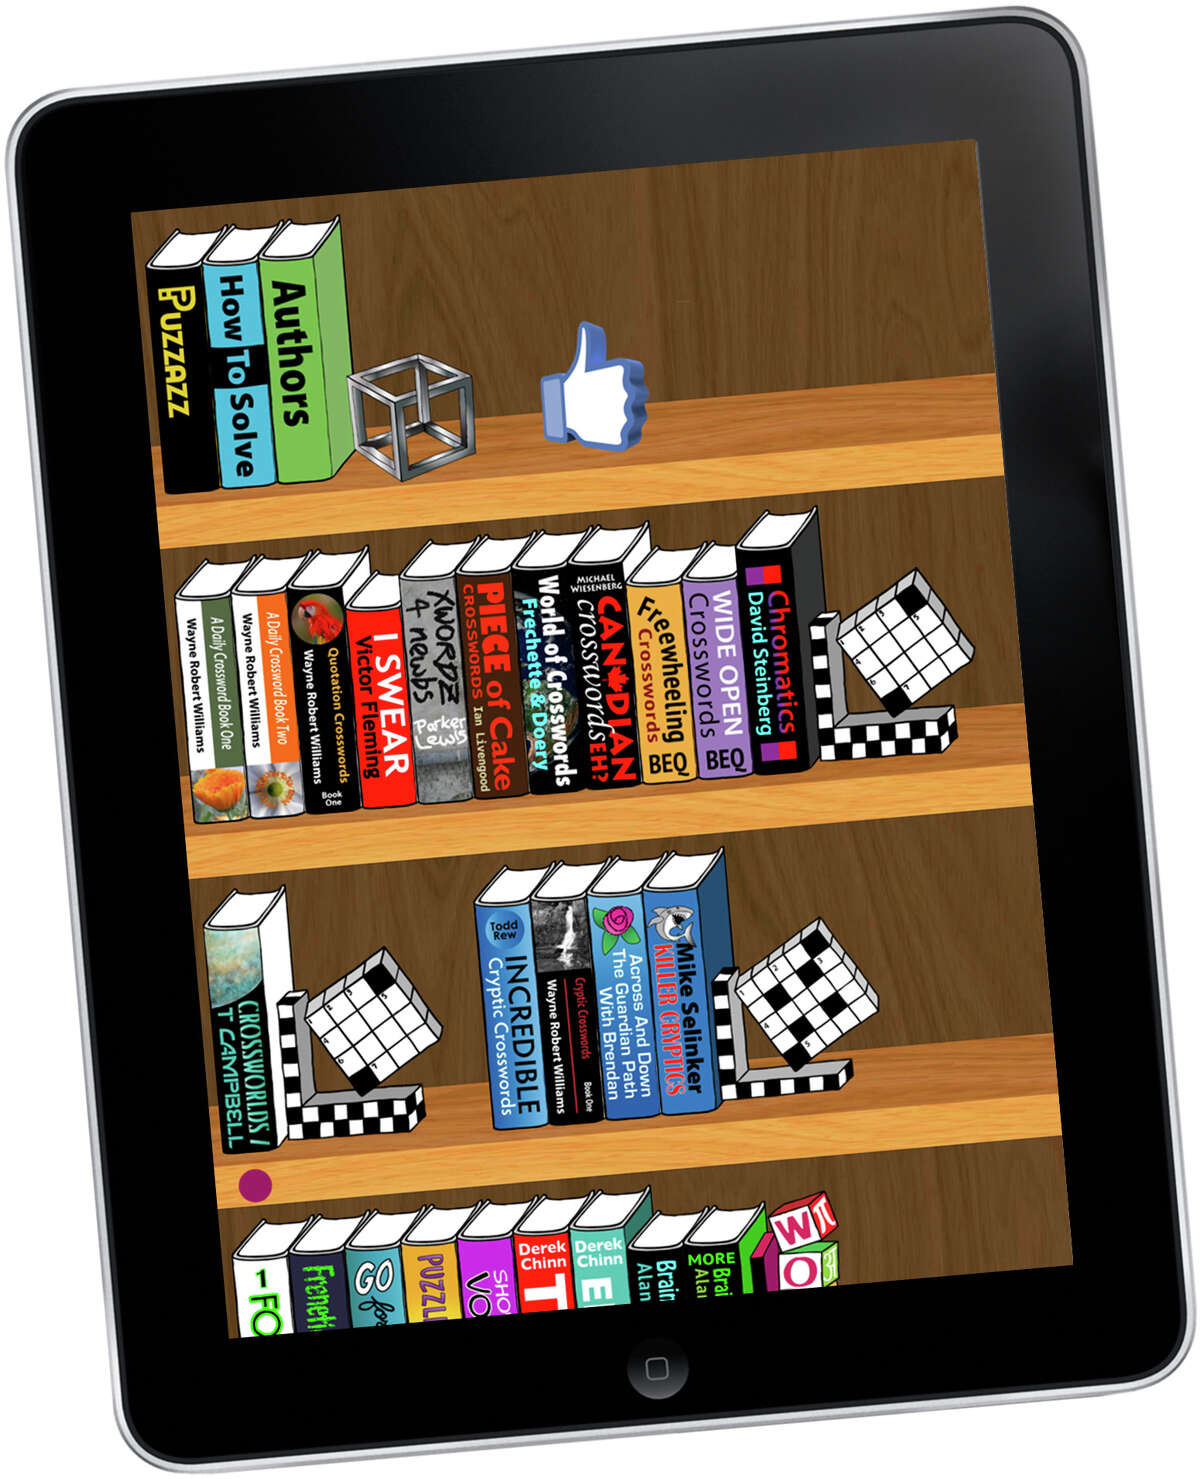 Puzzle books are shown on the Puzzazz iPad app.